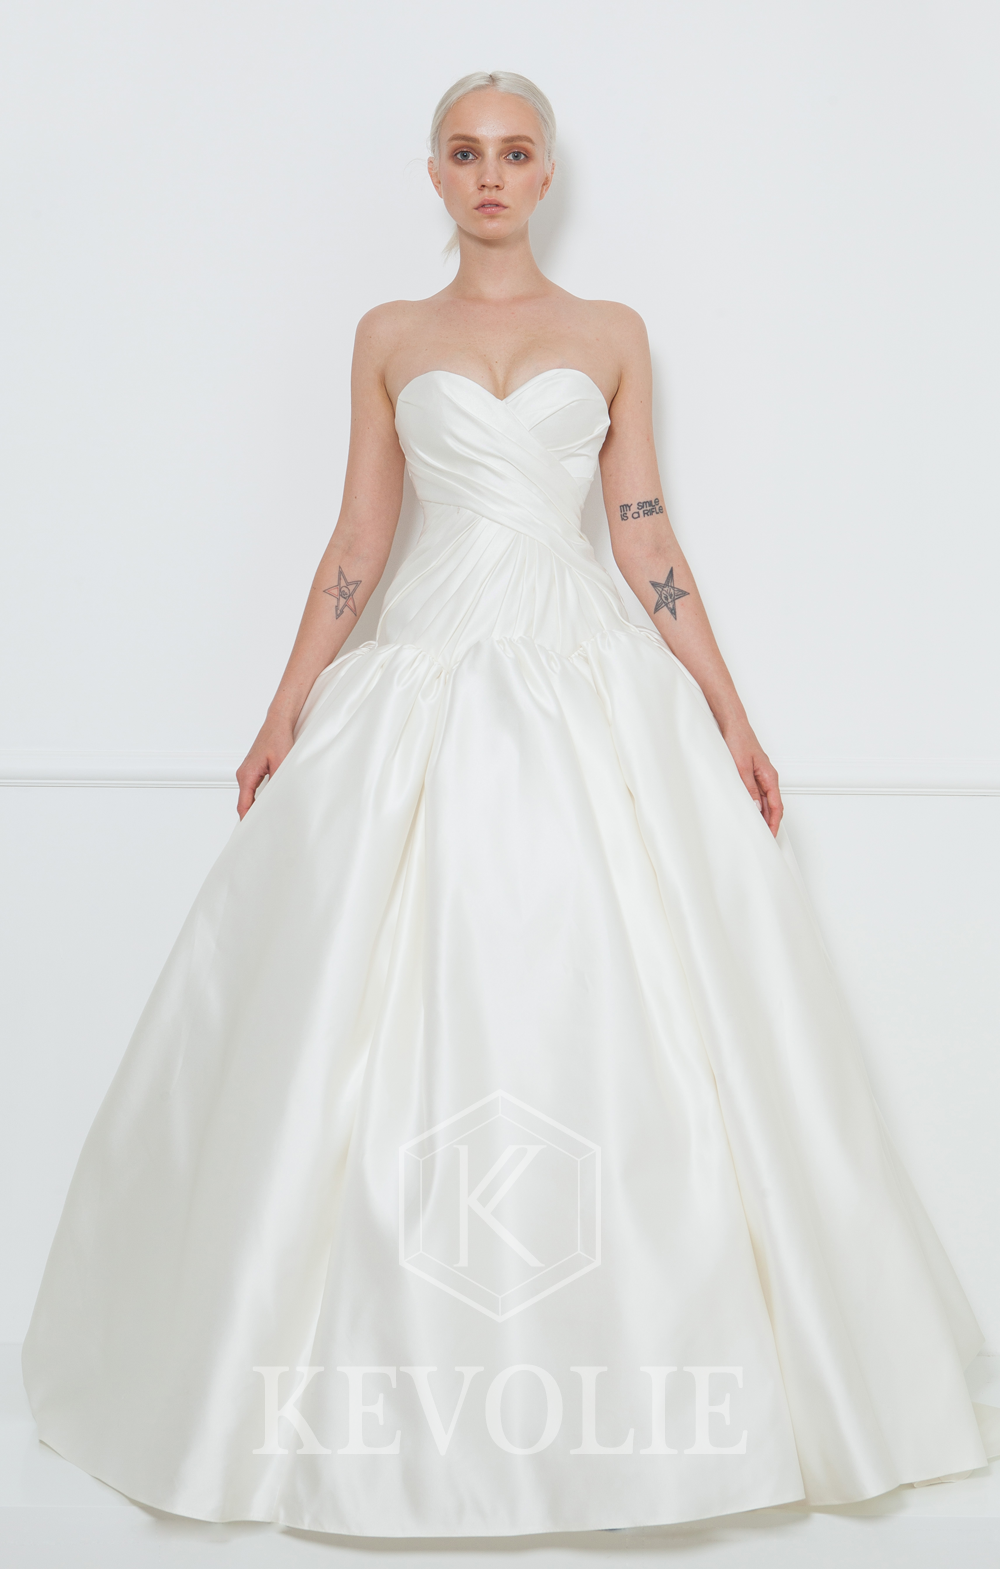 BRIDAL COLLECTION 2015-LOOK 19